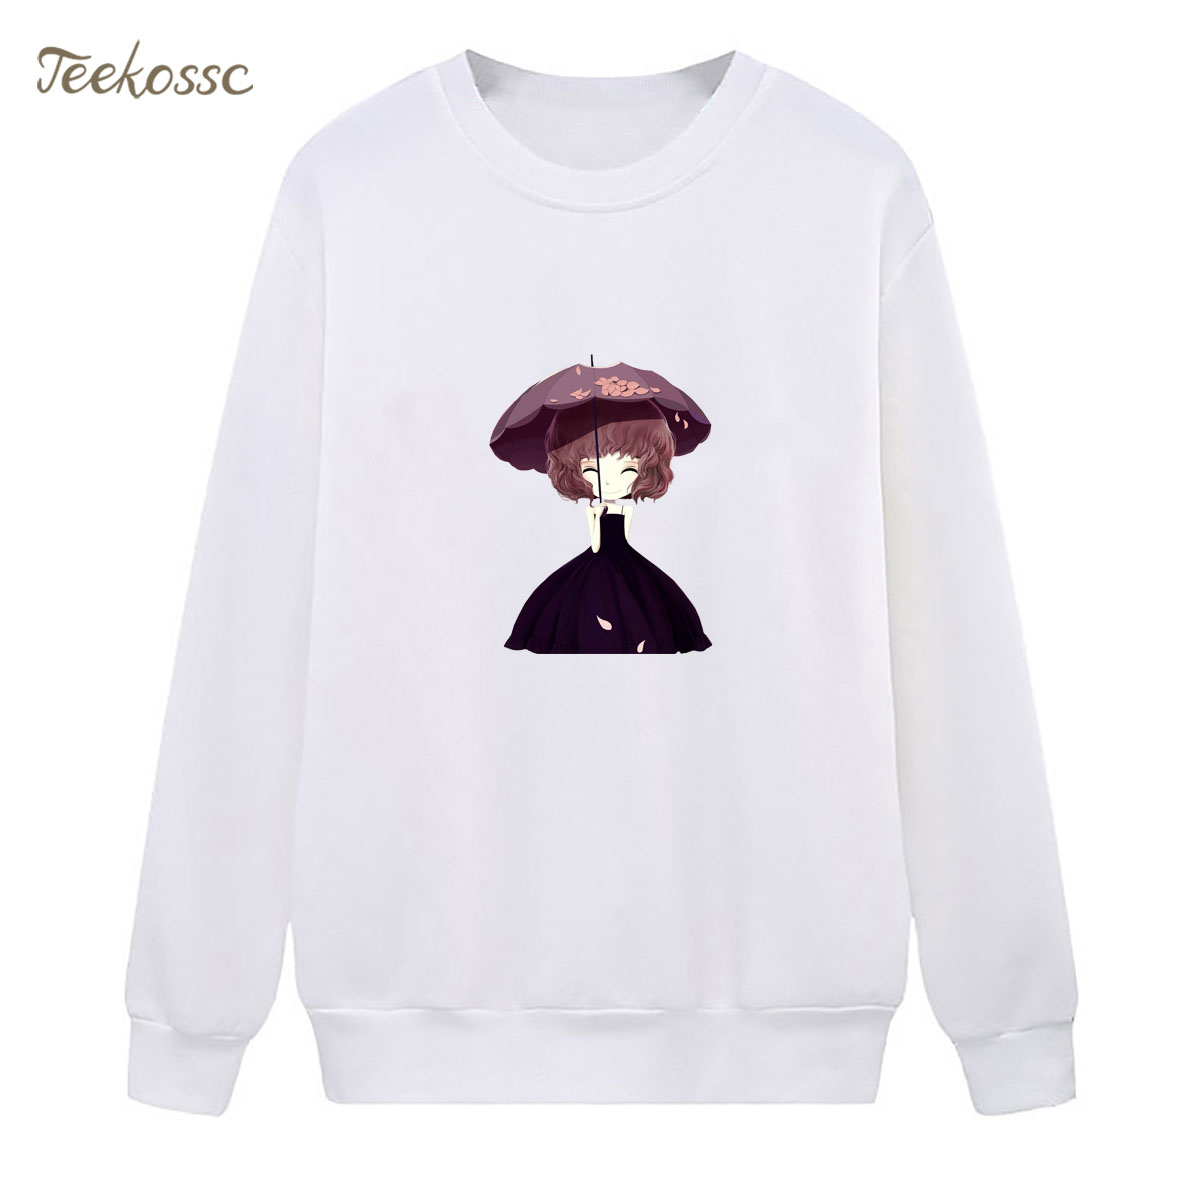 Girls Sweatshirt White Hoodie 2018 New Design Winter Autumn Women Lasdies Pullover Fleece Warm Loose Casual Hipster Streetwear